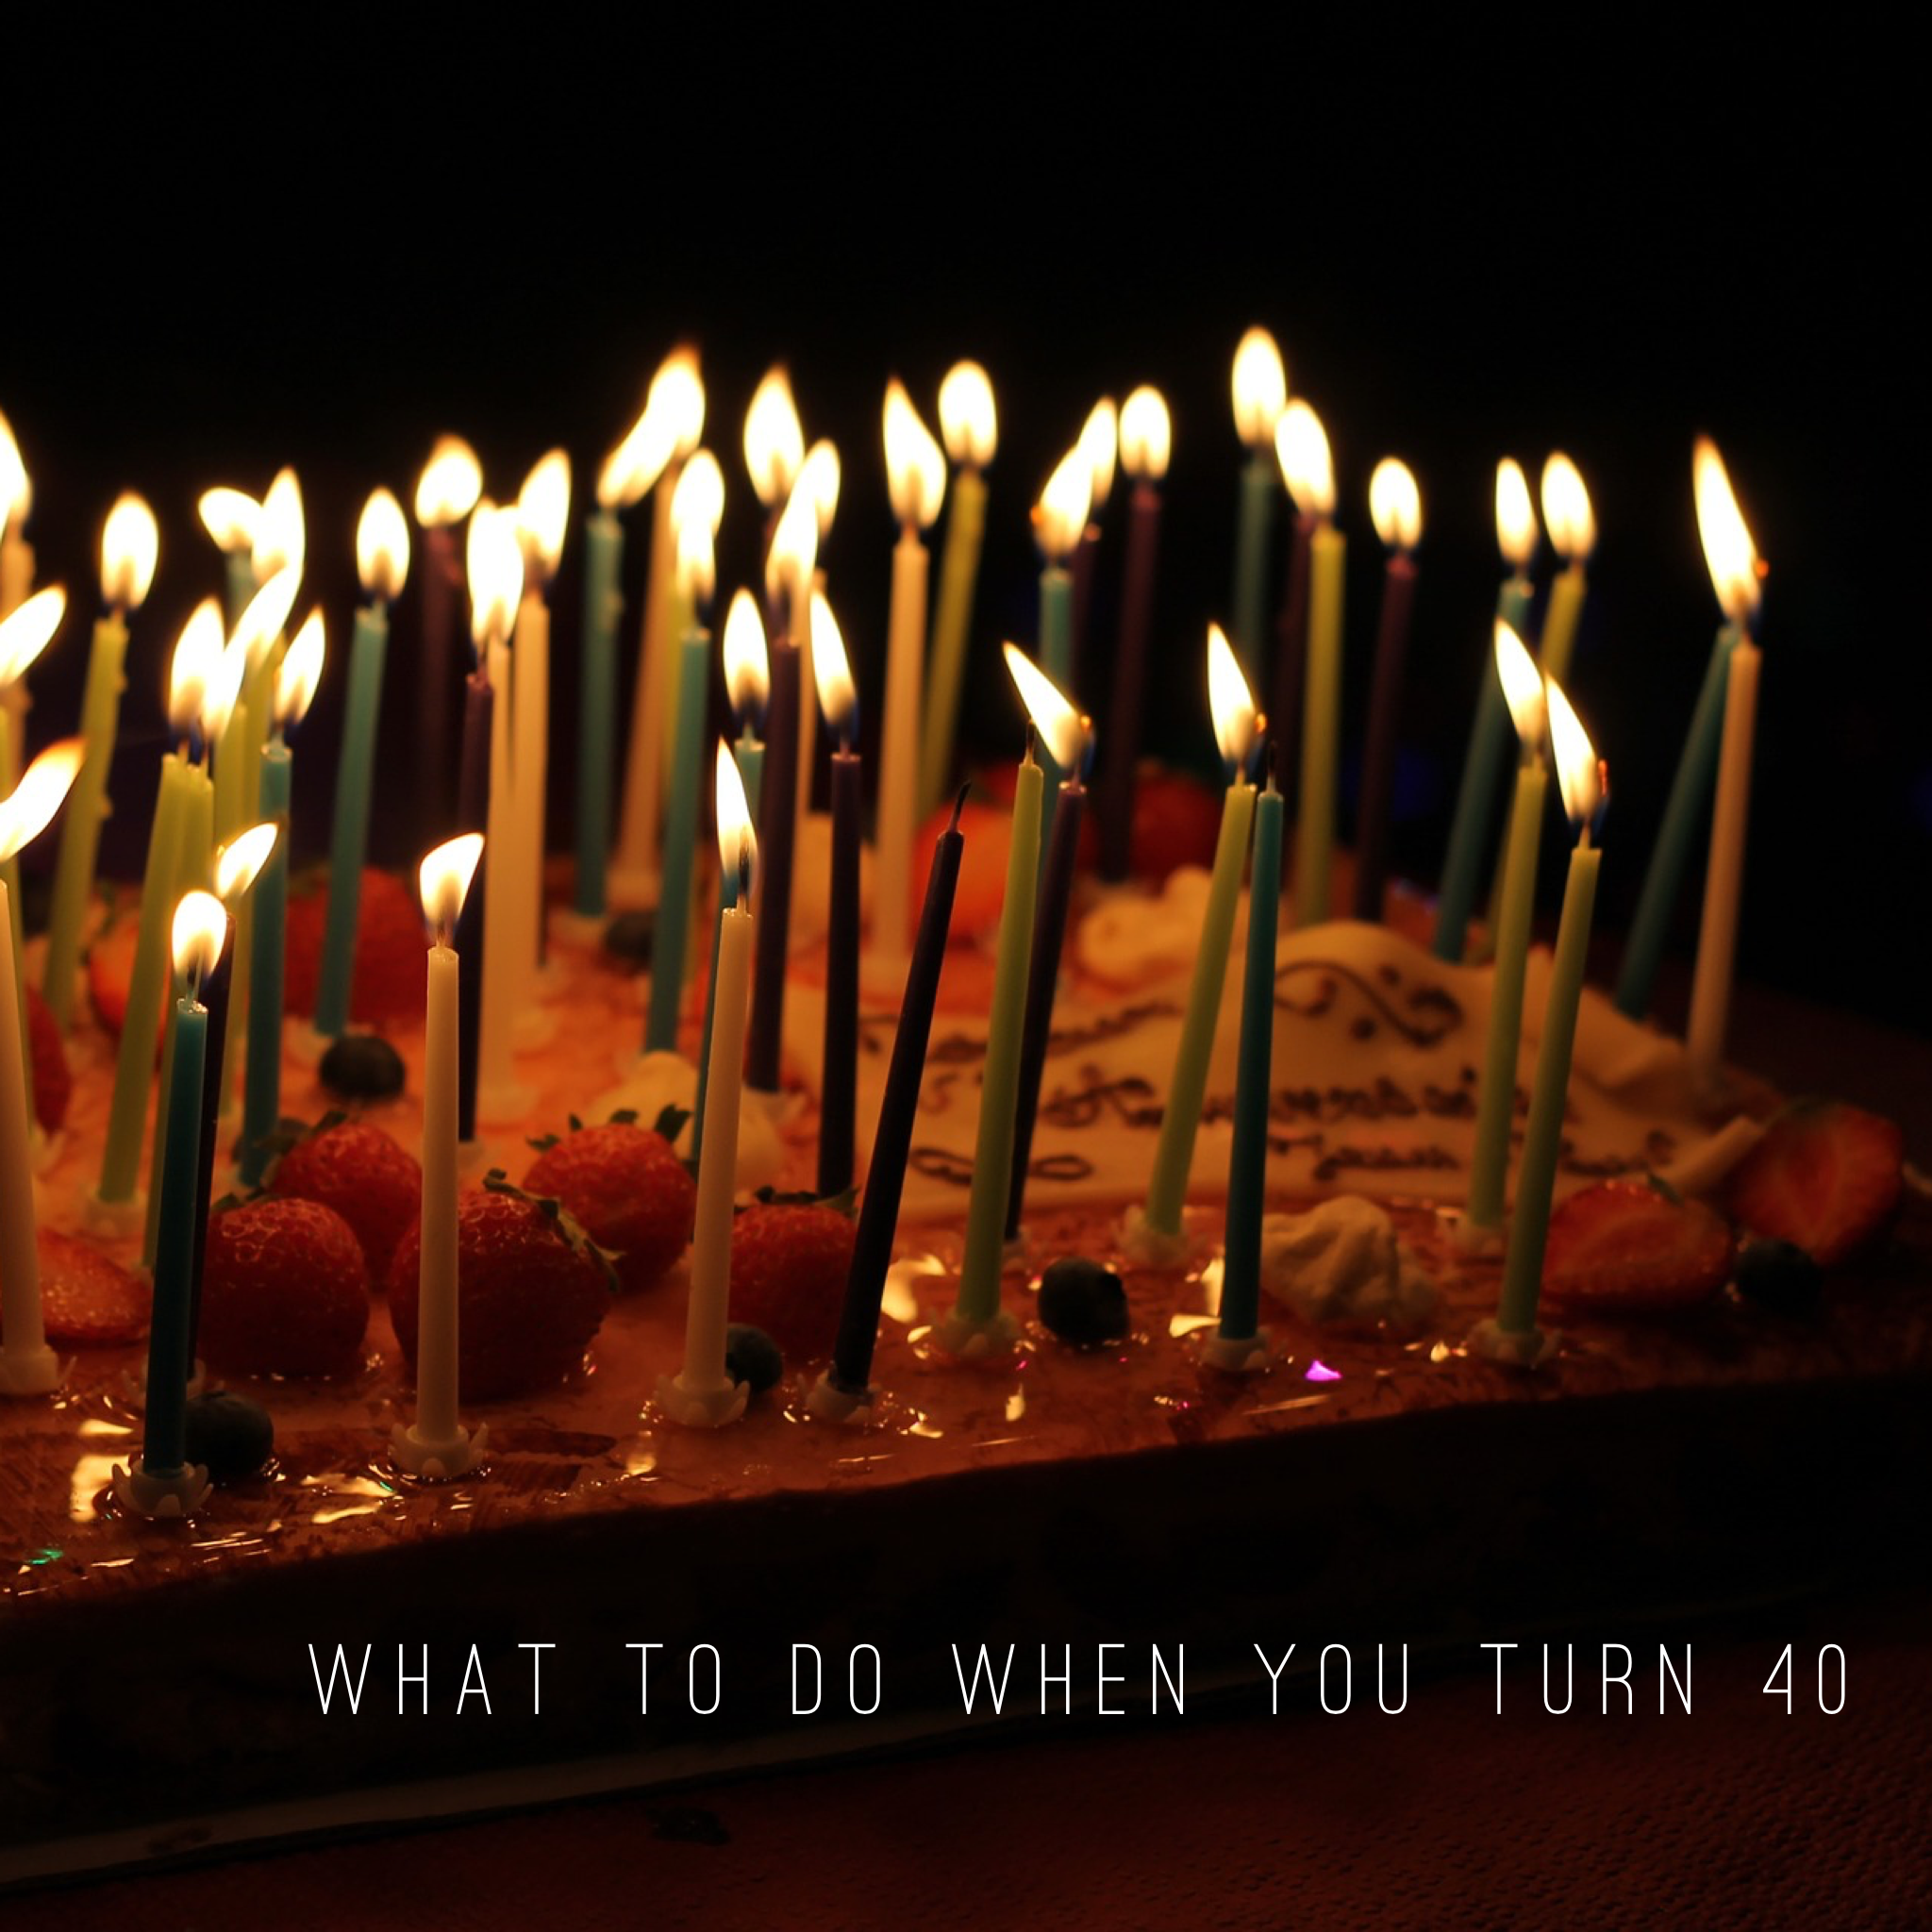 what to do when you turn 40